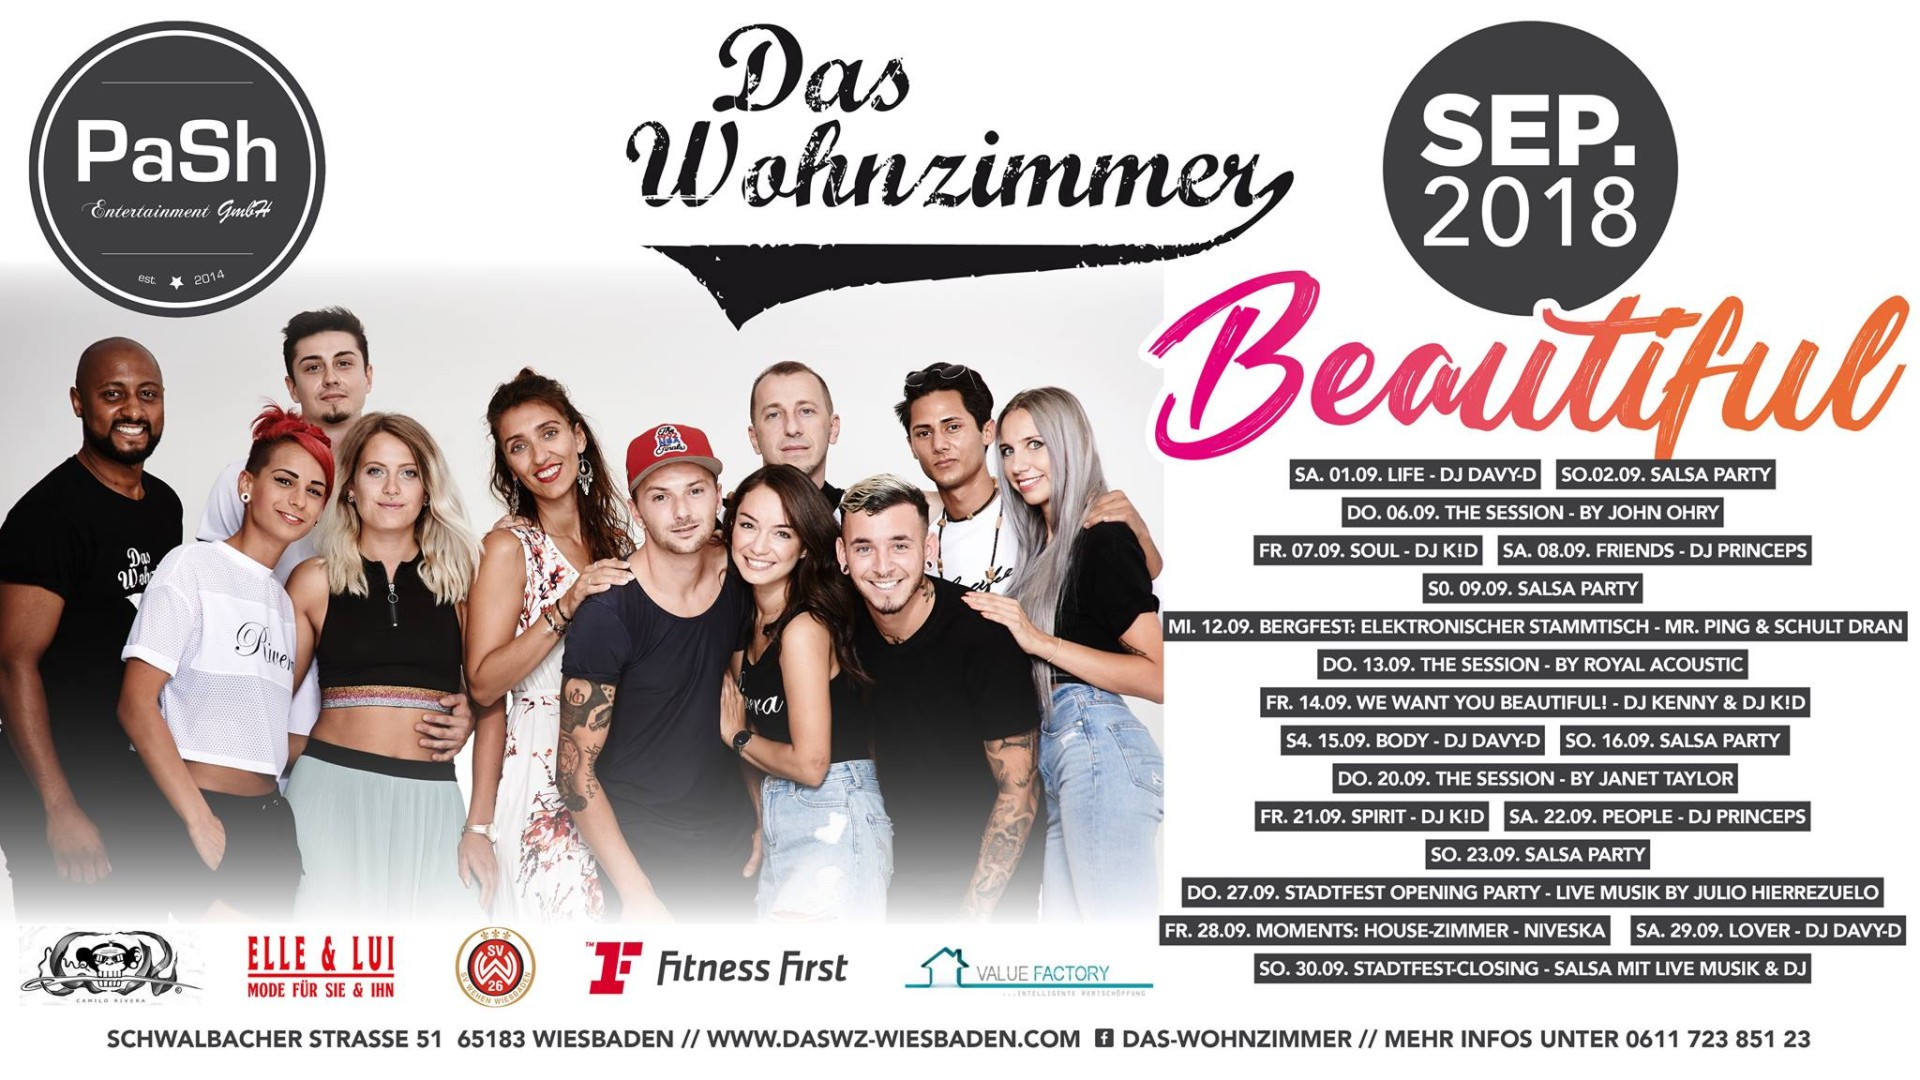 After Work Wohnzimmer Wiesbaden 15 09 2018 Beautiful Body Party With Dj Davy D Das Wohnzimmer